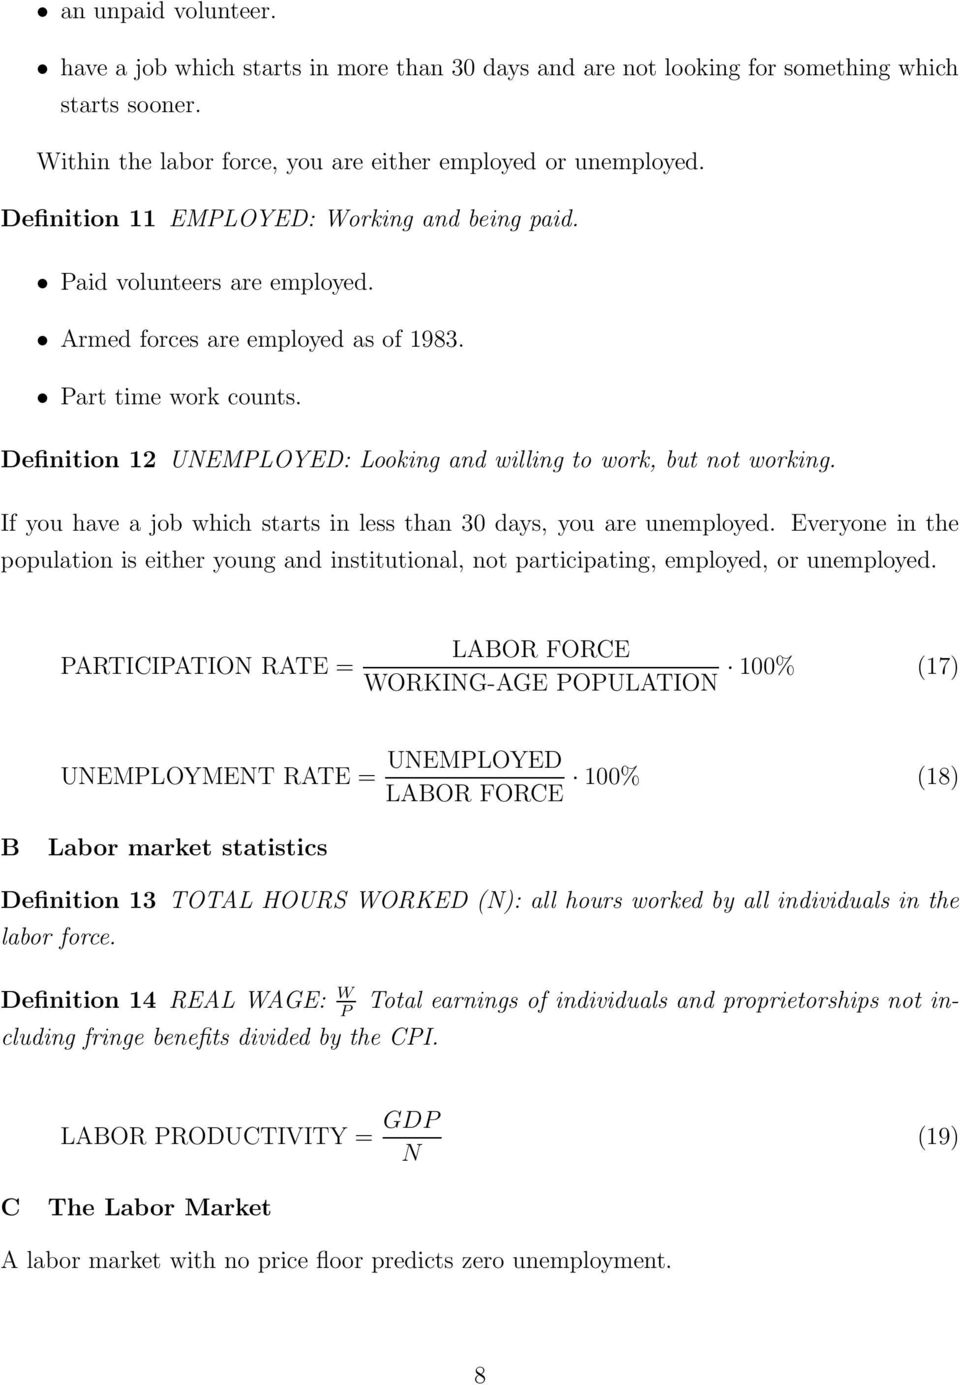 Definition 12 UNEMPLOYED: Looking and willing to work, but not working. If you have a job which starts in less than 30 days, you are unemployed.